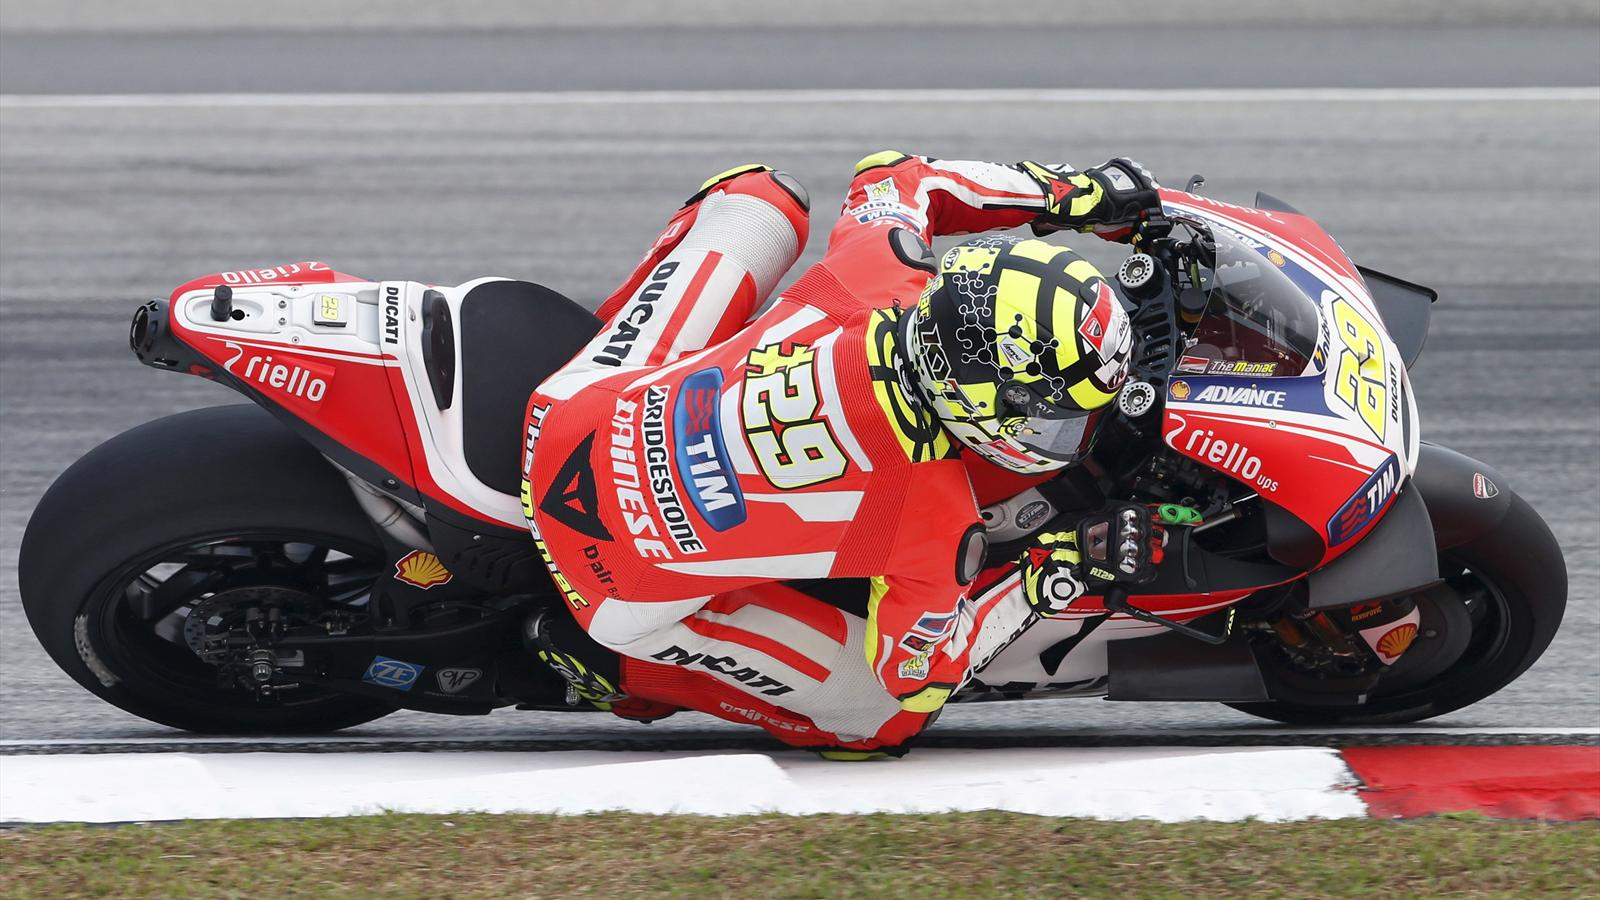 ducati 39 s iannone tops third motogp practice motorcycling eurosport uk. Black Bedroom Furniture Sets. Home Design Ideas